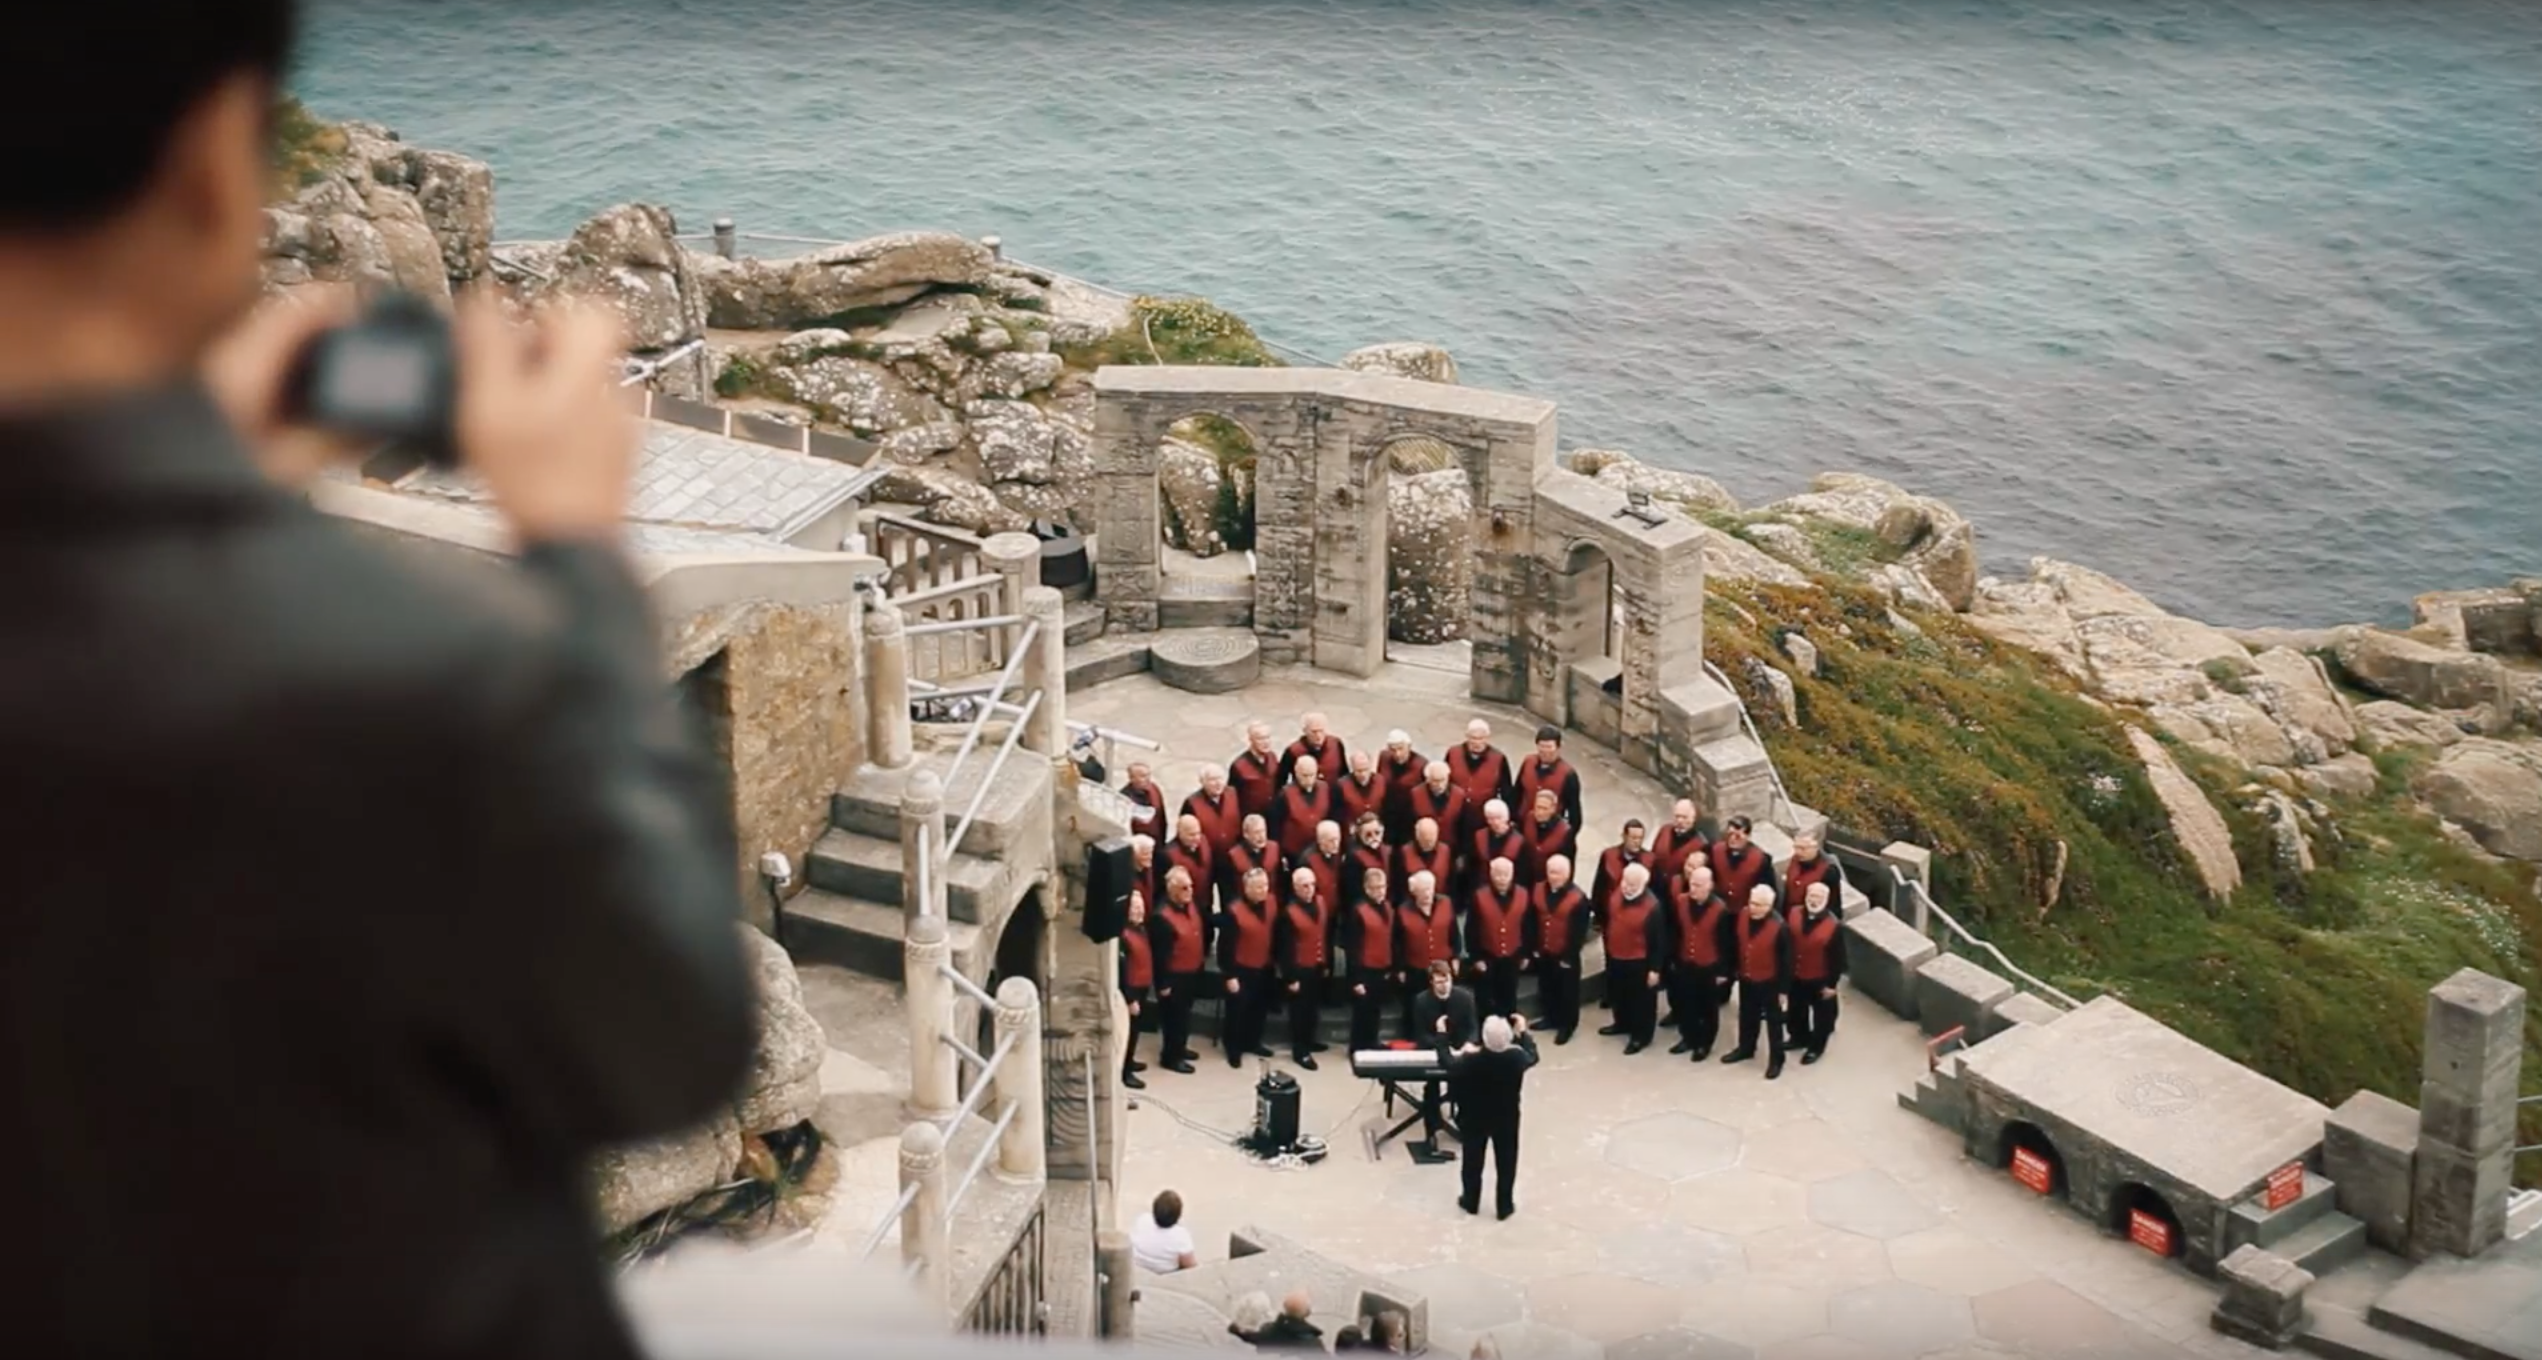 Video Marketing the Cornwall International Male Choral Festival